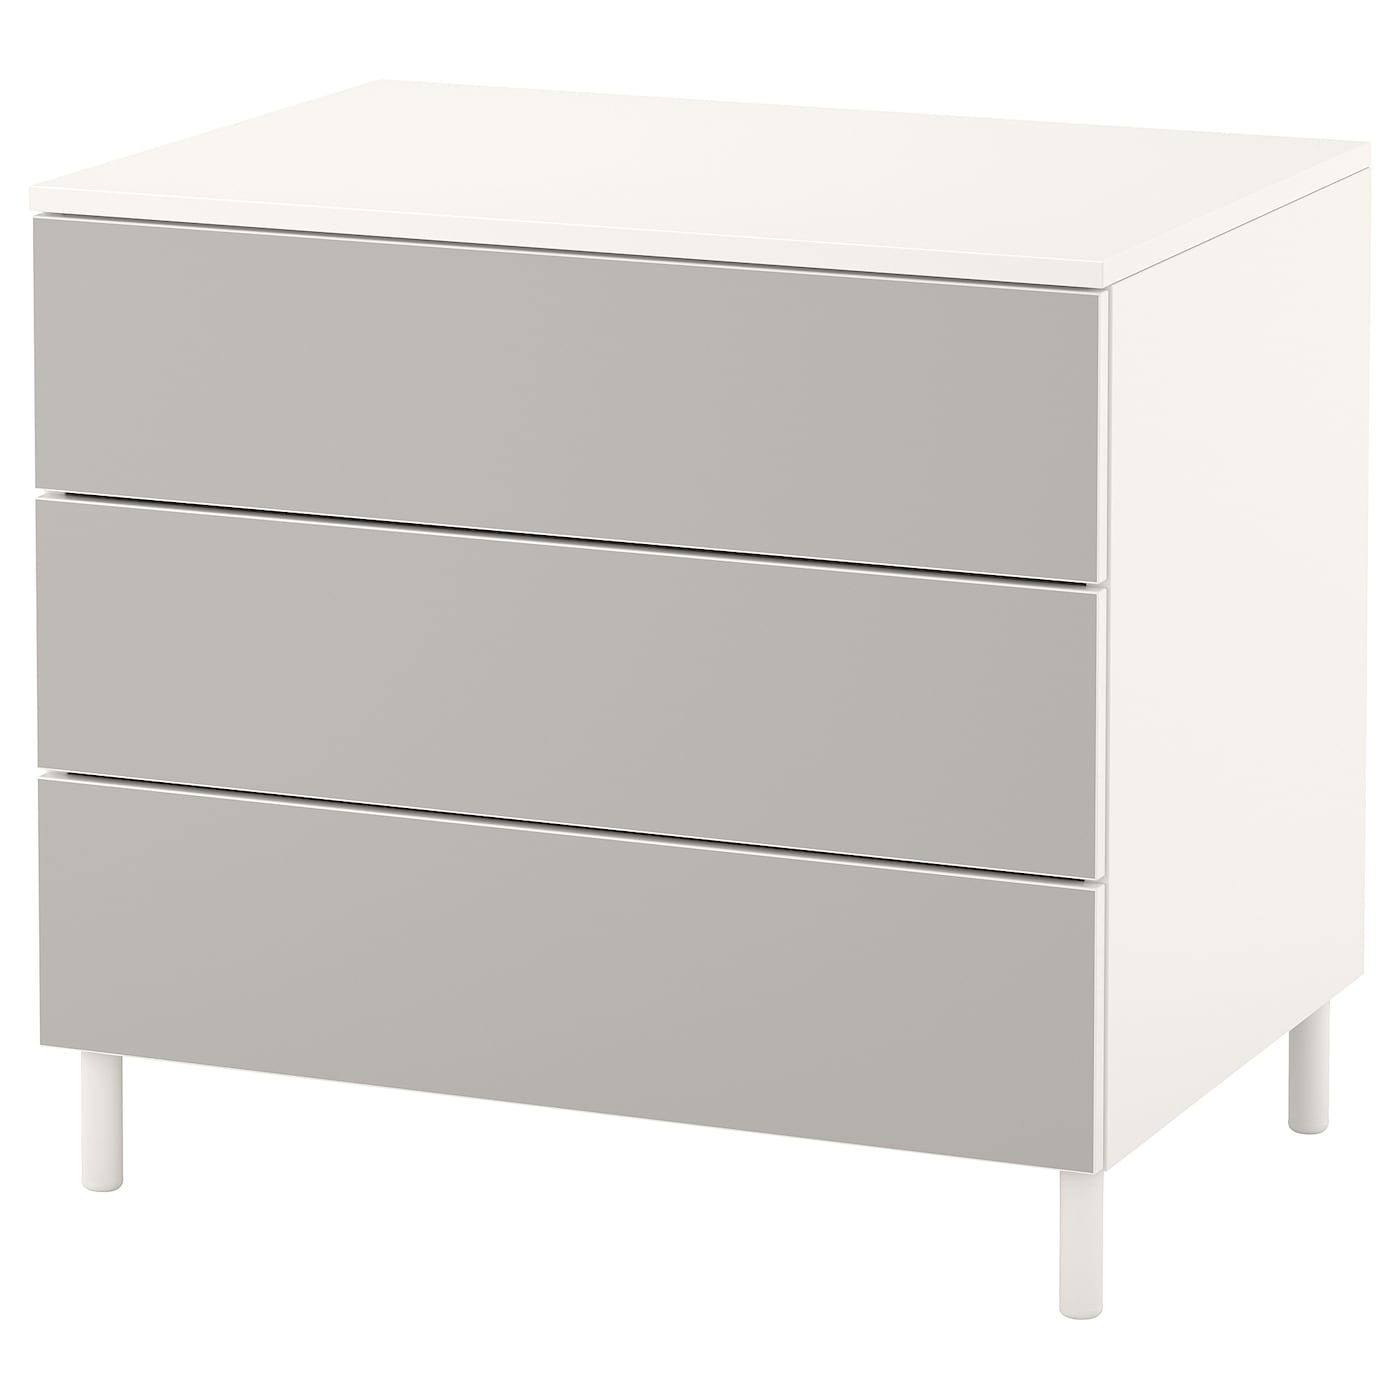 Ikea Platsa Chest Of 3 Drawers Smooth Running With Pull Out Stop